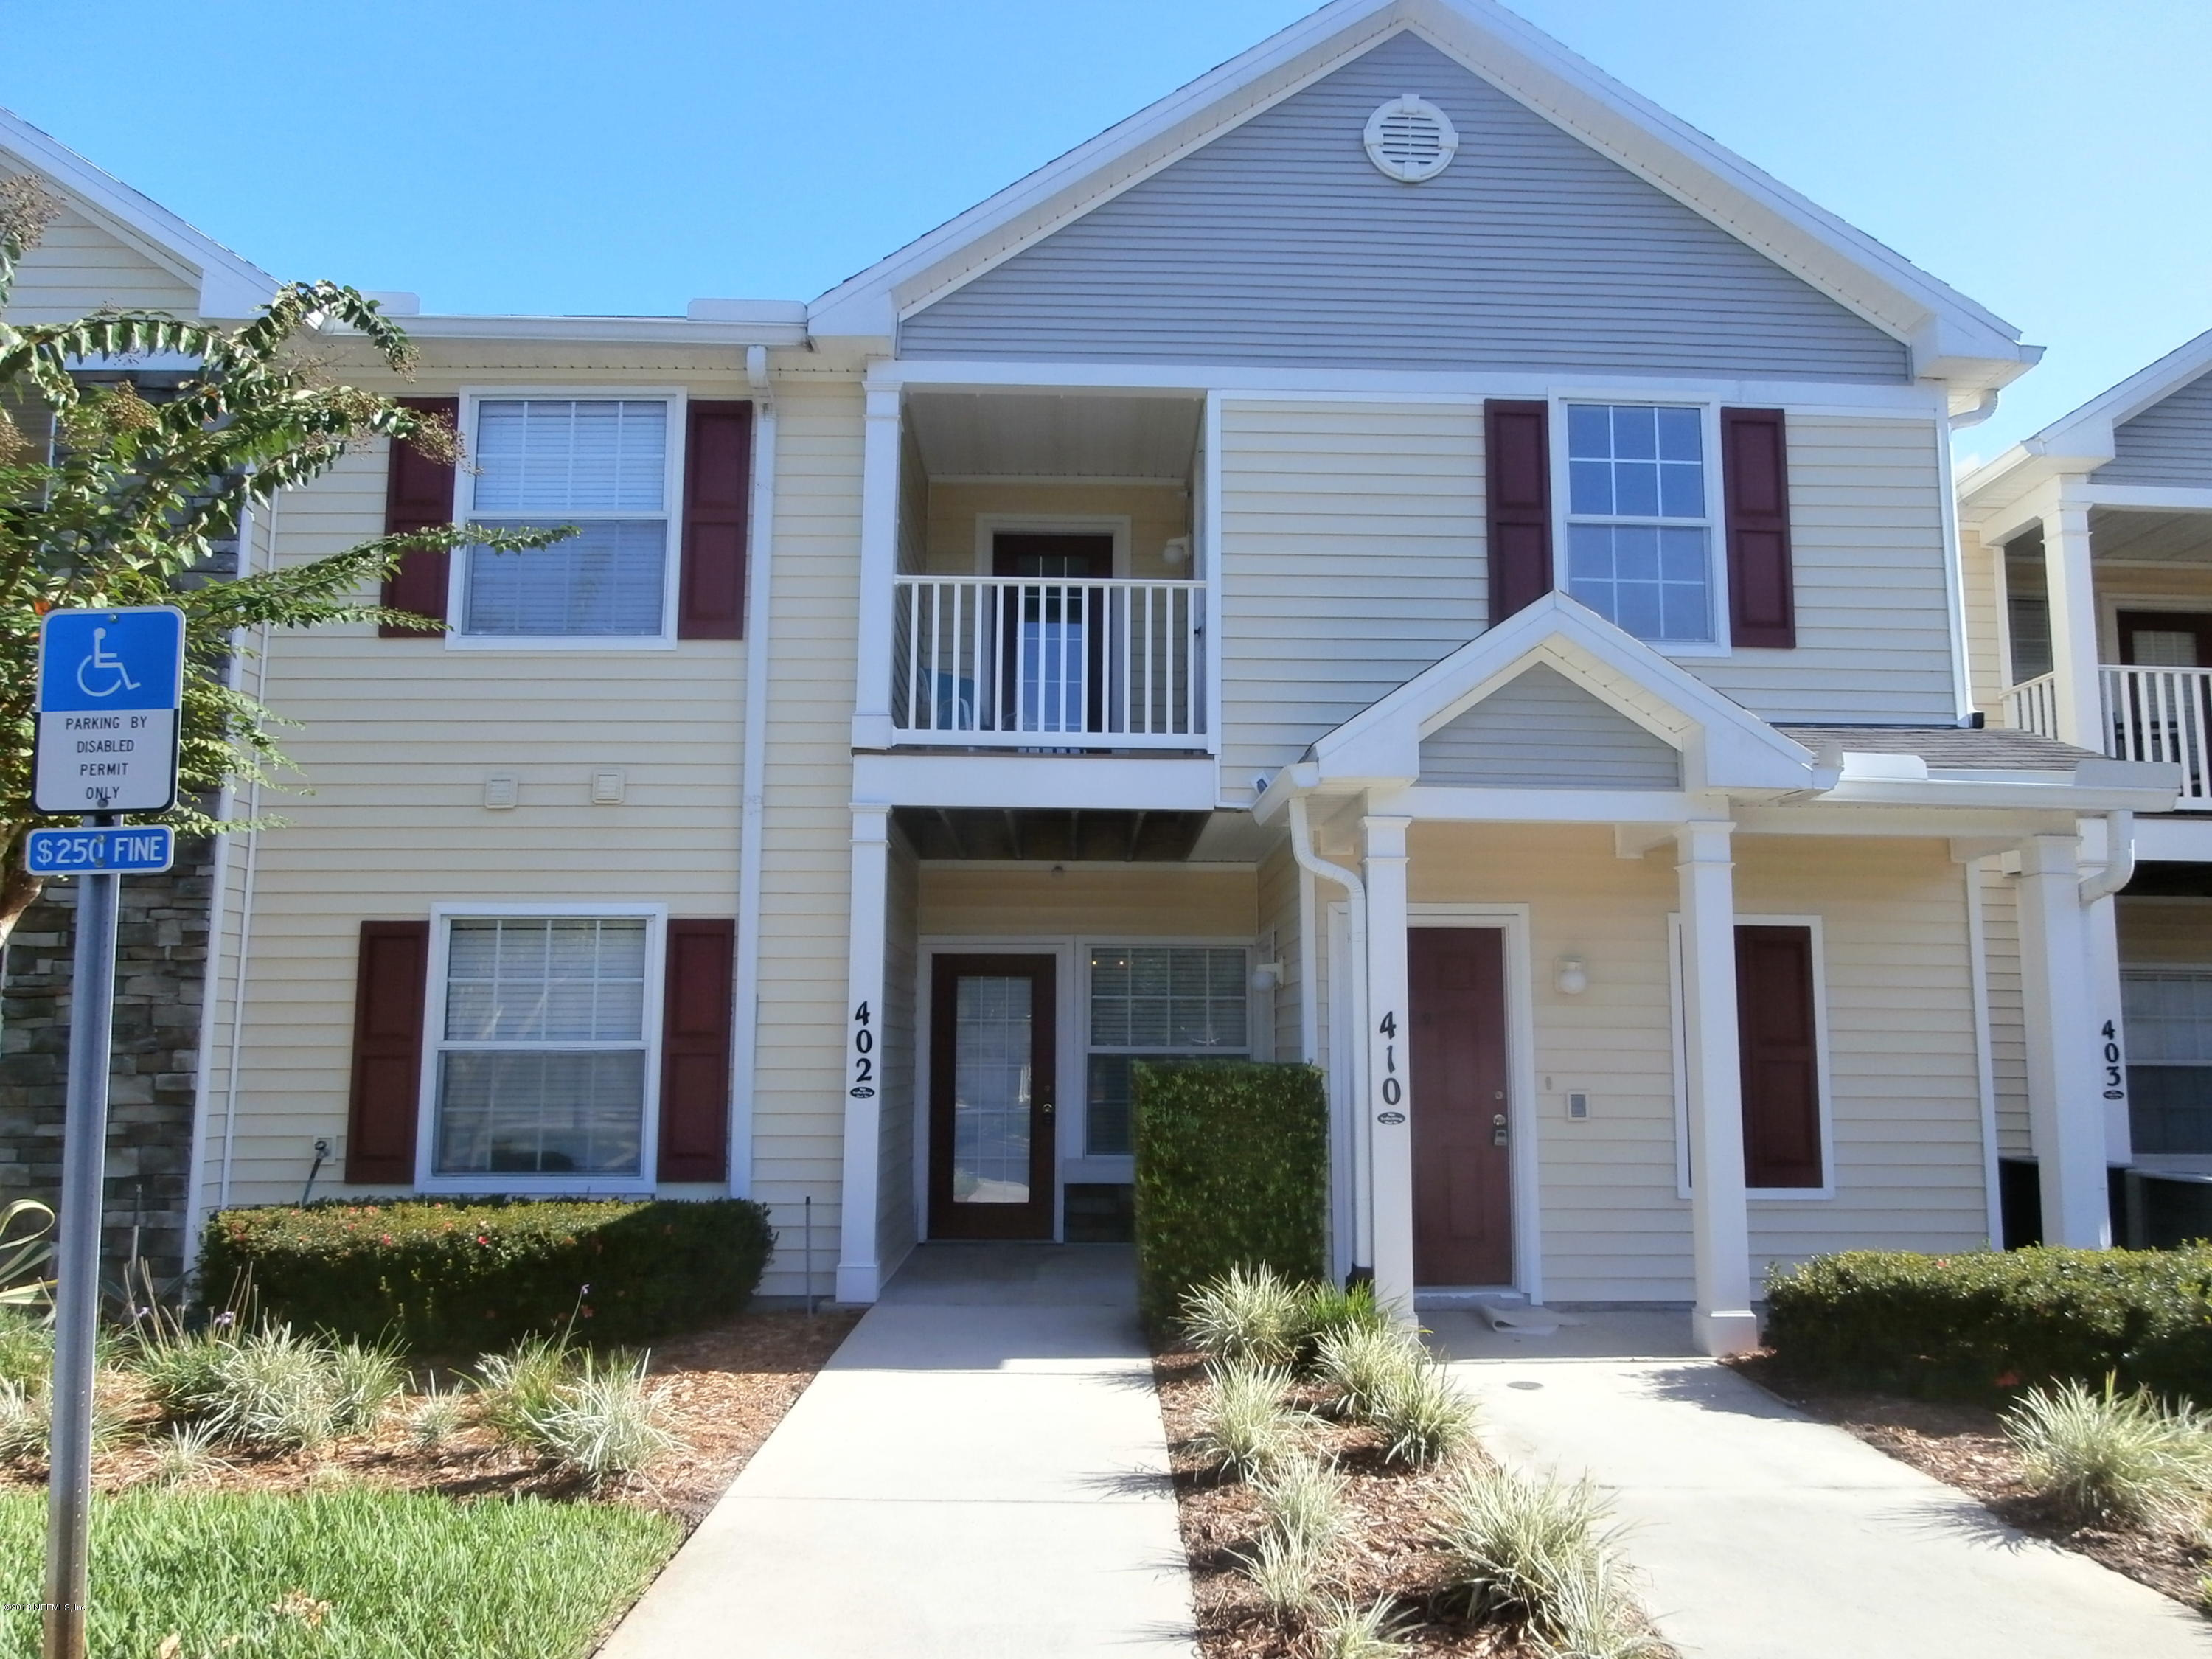 575 OAKLEAF PLANTATION, ORANGE PARK, FLORIDA 32065, 1 Bedroom Bedrooms, ,1 BathroomBathrooms,Residential - condos/townhomes,For sale,OAKLEAF PLANTATION,962705